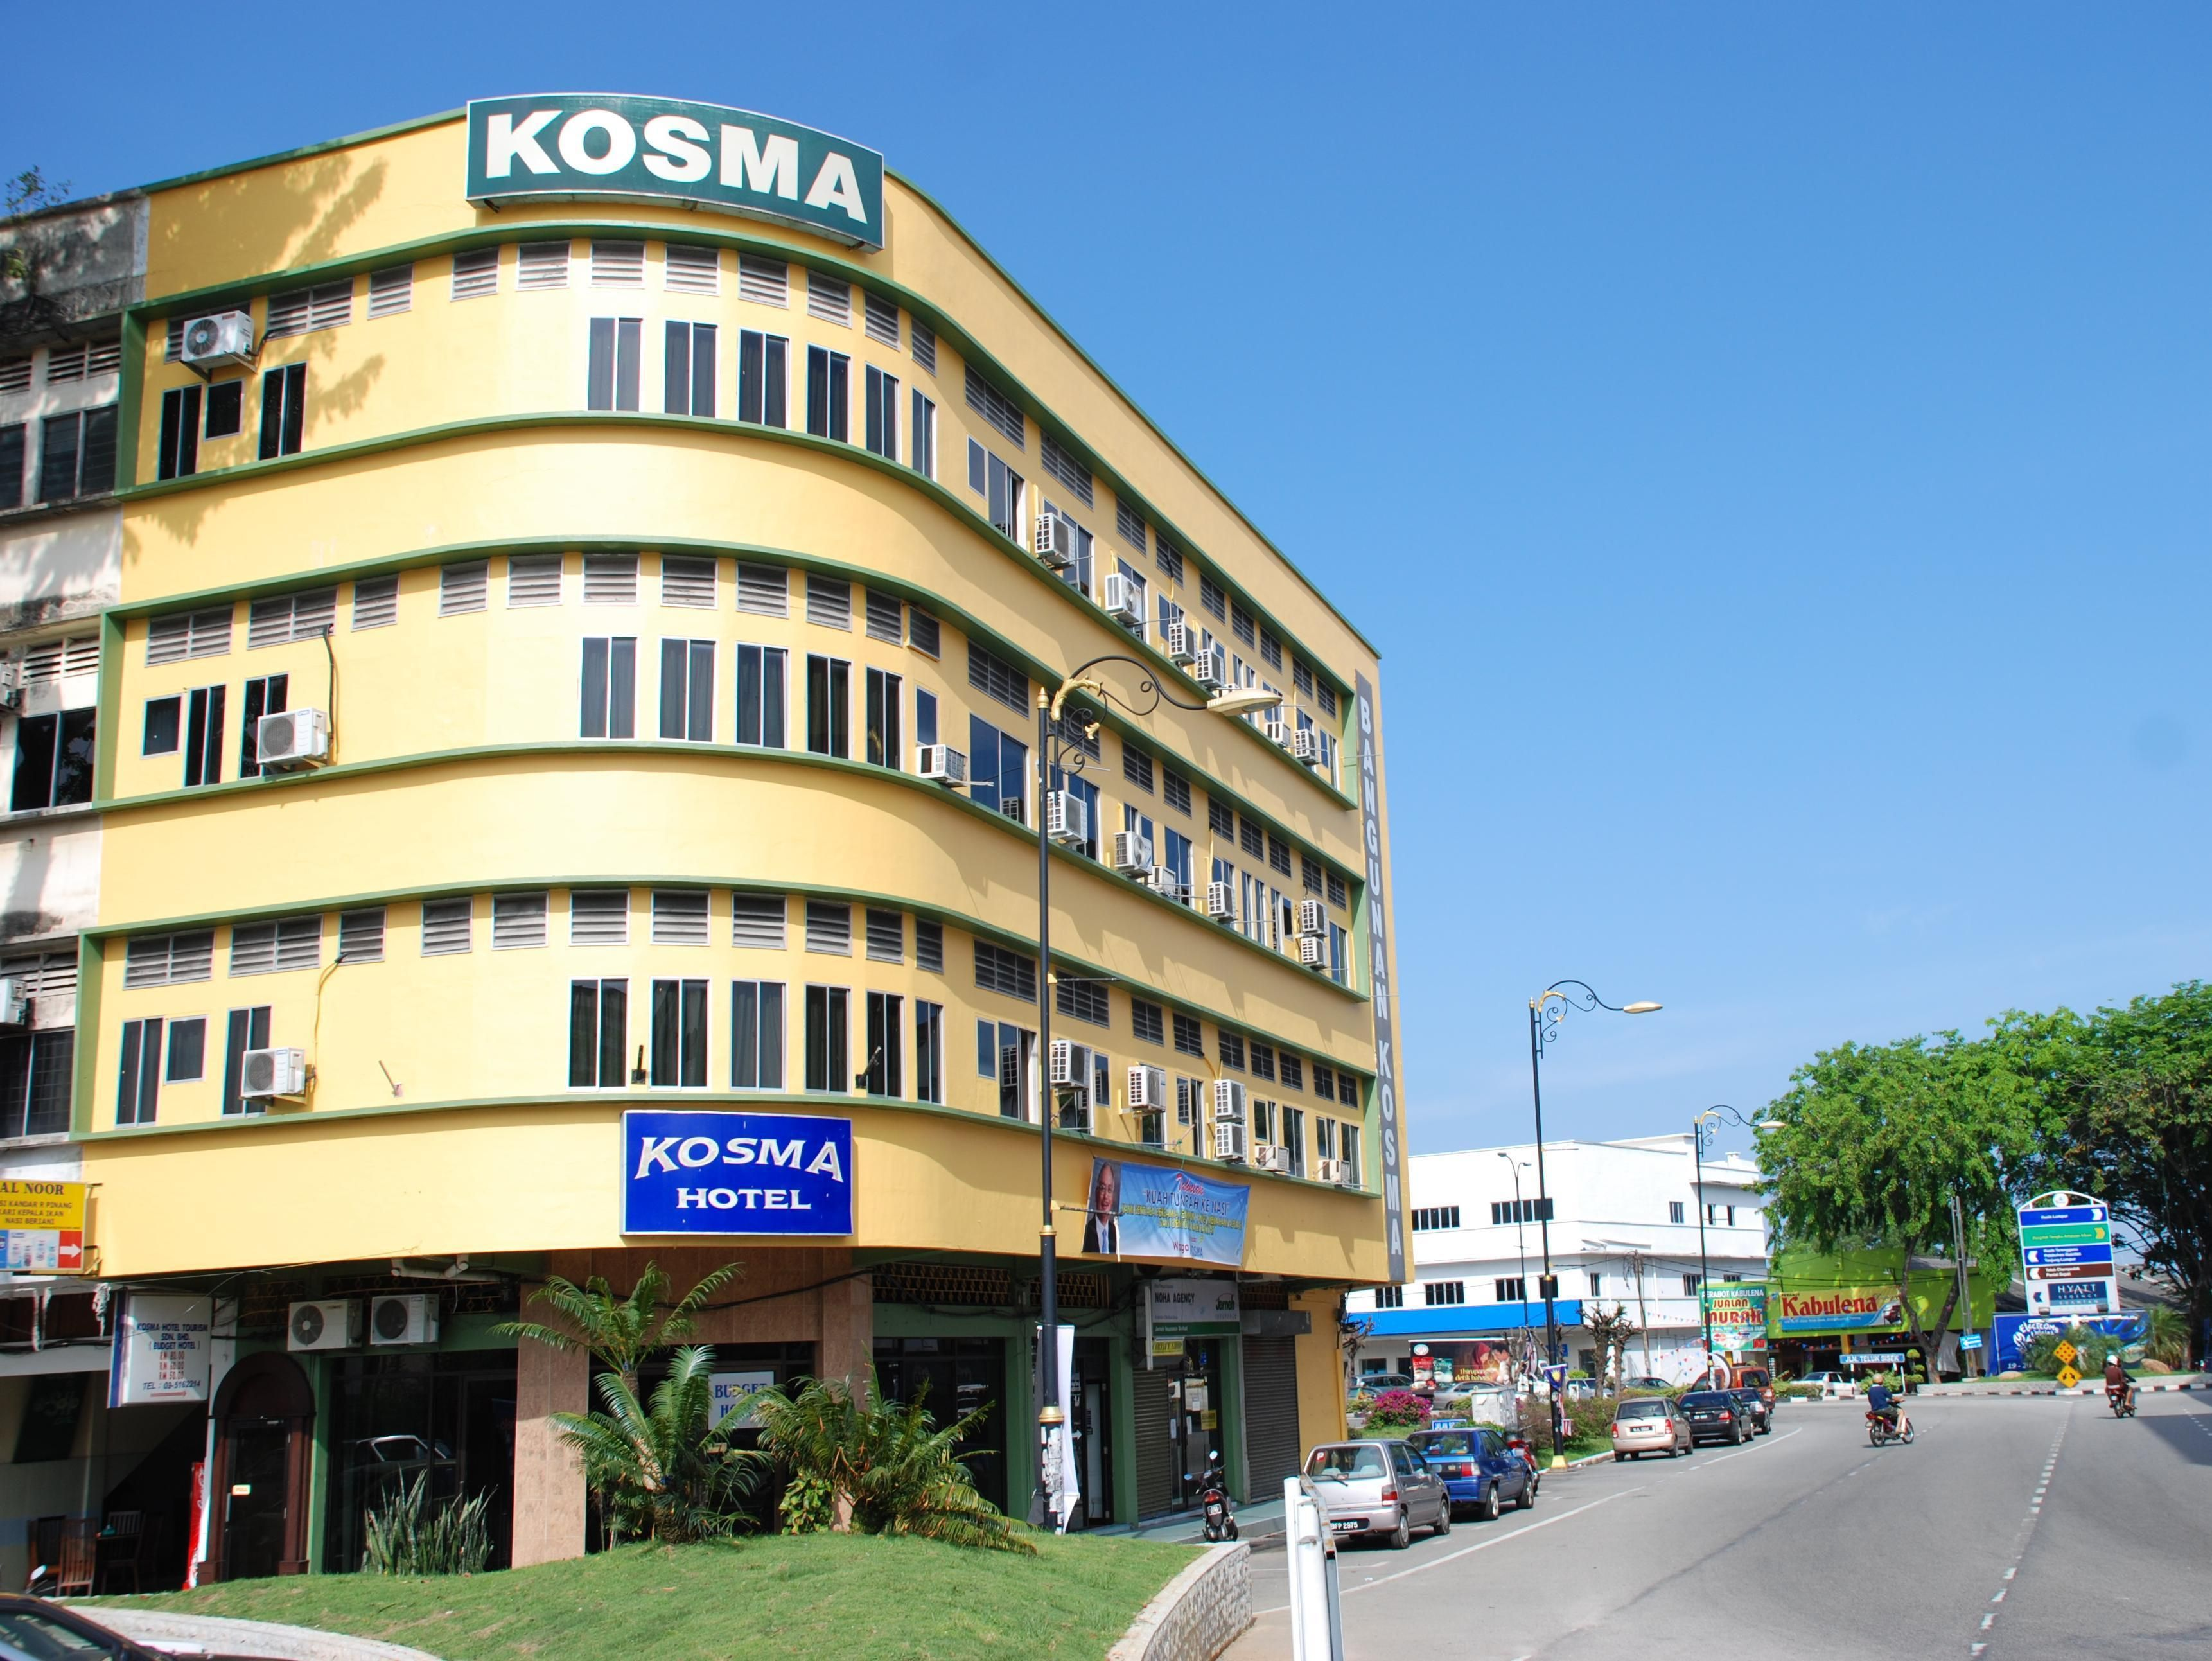 Kuantan Kosma Budget Hotel Malaysia, Asia Ideally located in the prime touristic area of Kuantan City, Kosma Budget Hotel promises a relaxing and wonderful visit. Featuring a complete list of amenities, guests will find their stay at the property a comfortable one. To be found at the hotel are free Wi-Fi in all rooms, Wi-Fi in public areas, family room. Some of the well-appointed guestrooms feature internet access – wireless (complimentary), air conditioning, television, satel...